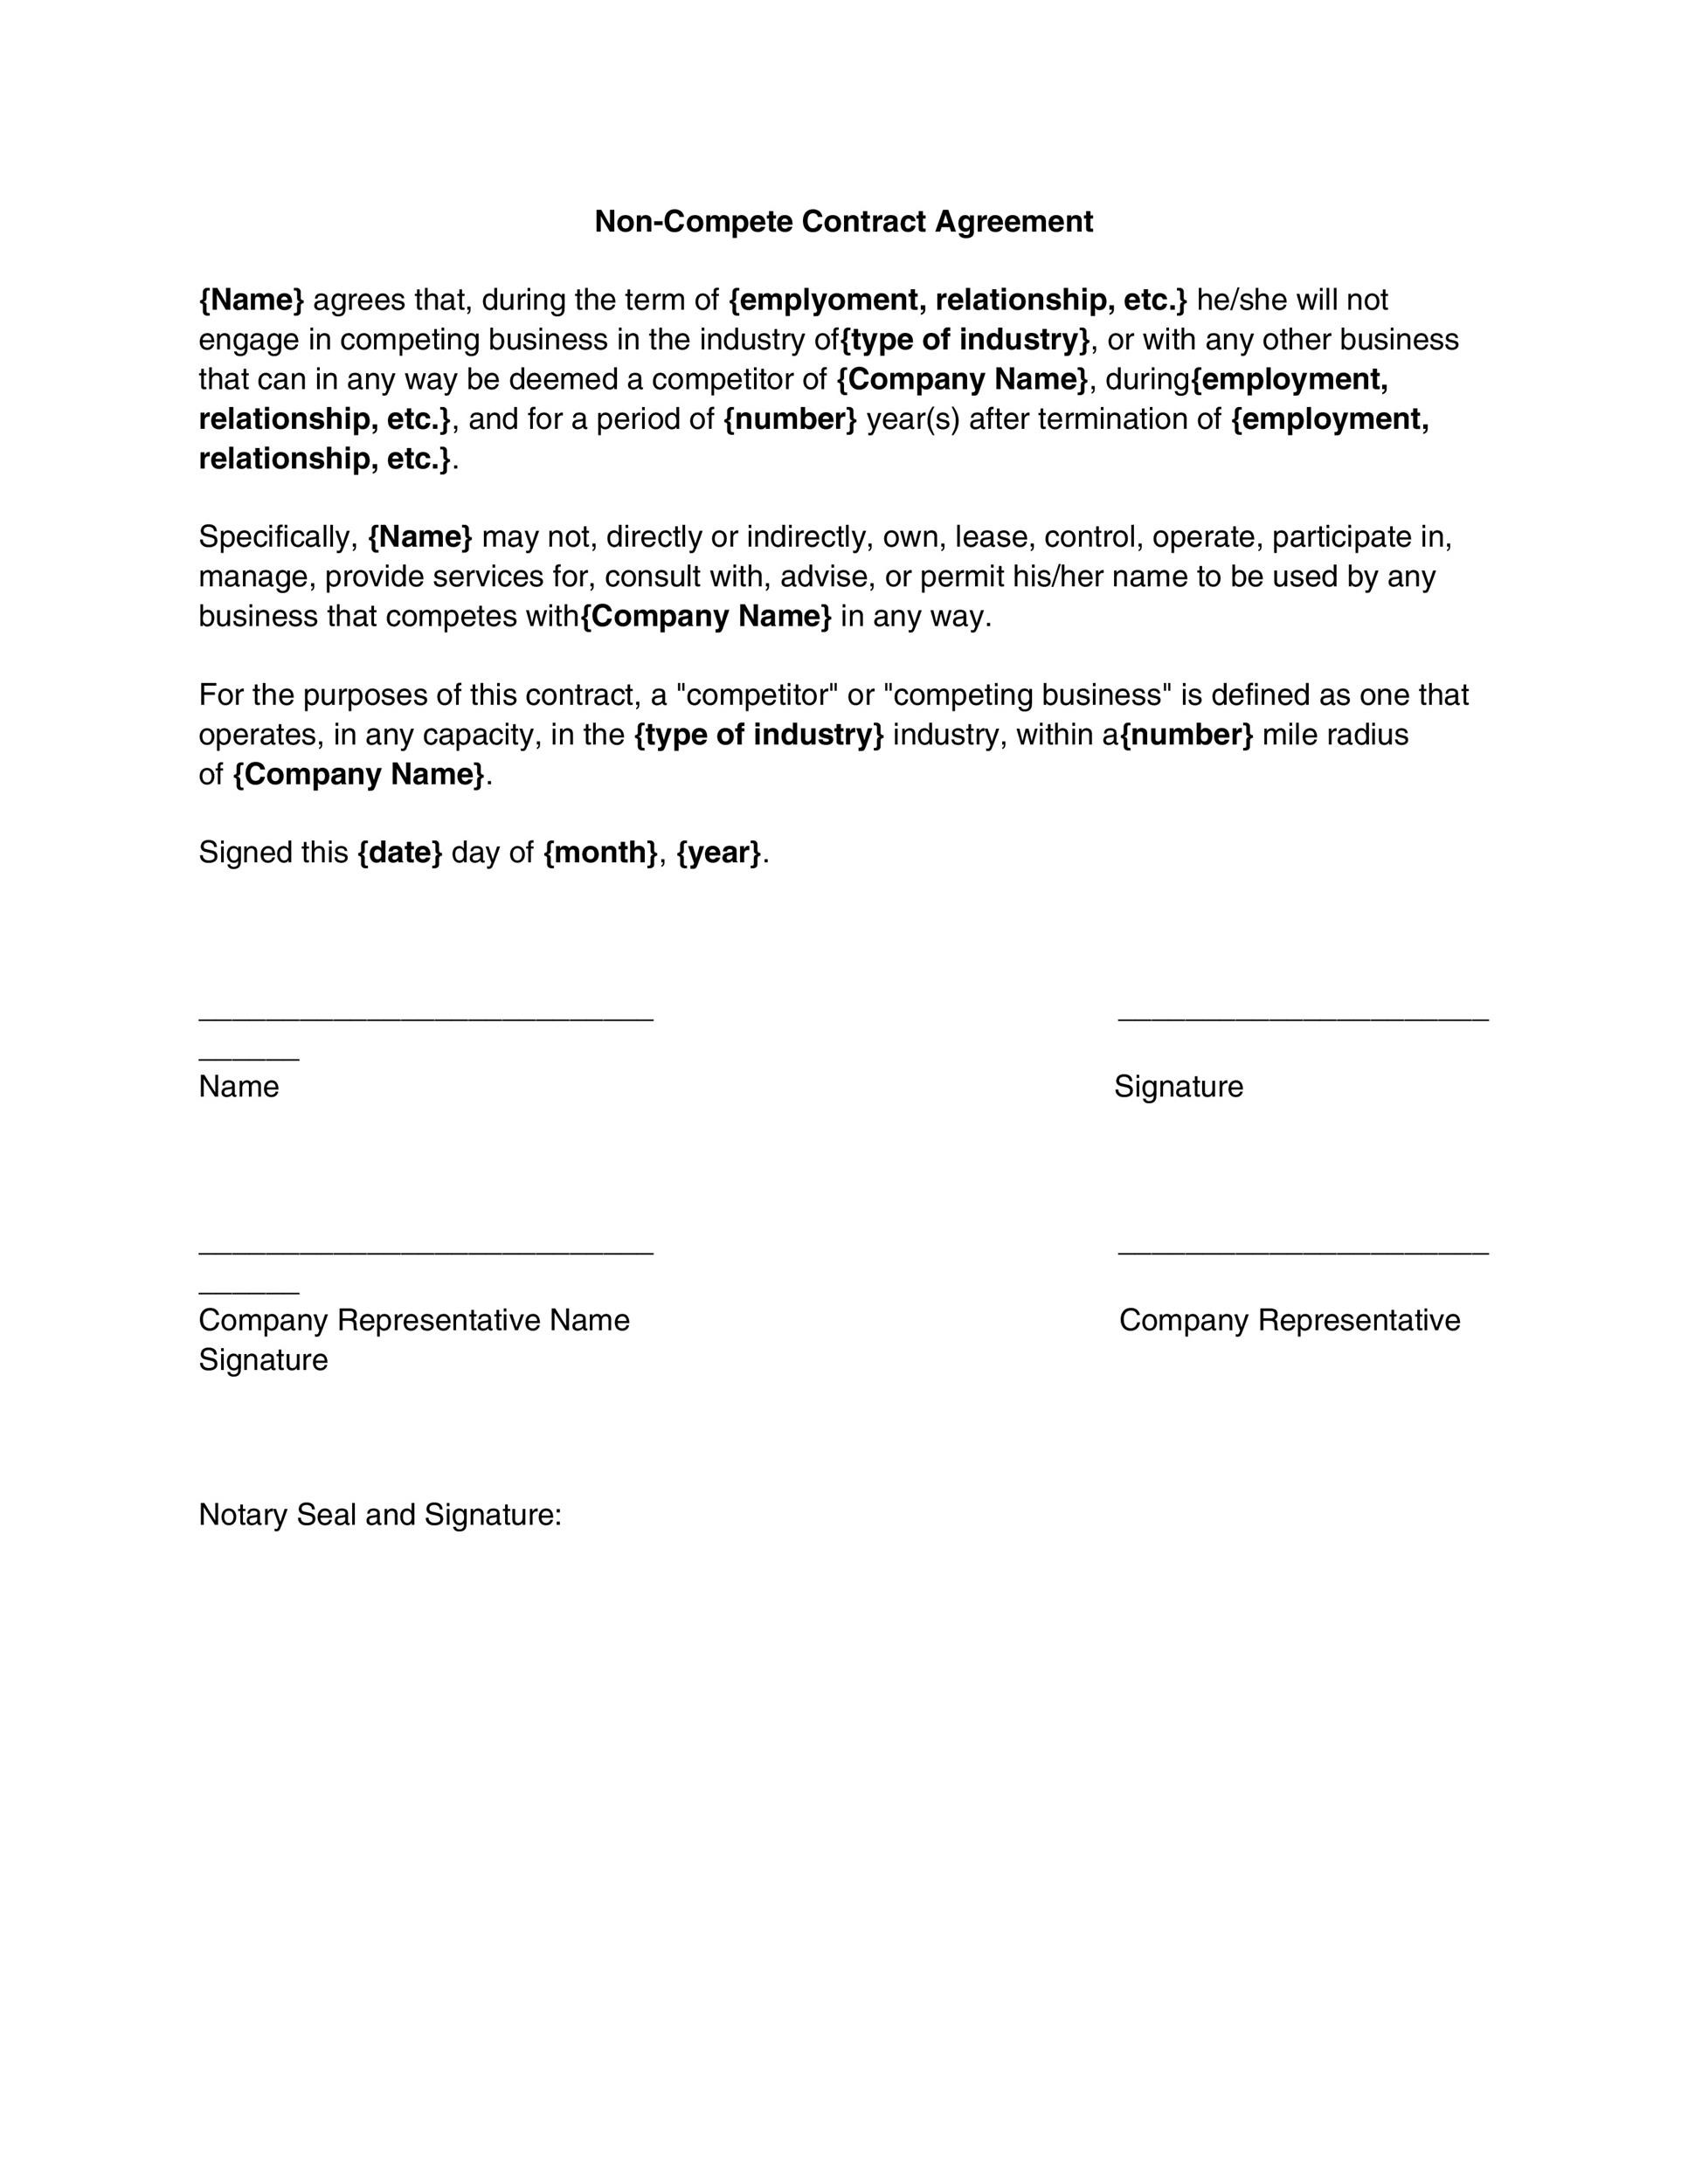 Free Non-Compete Agreement Template 04